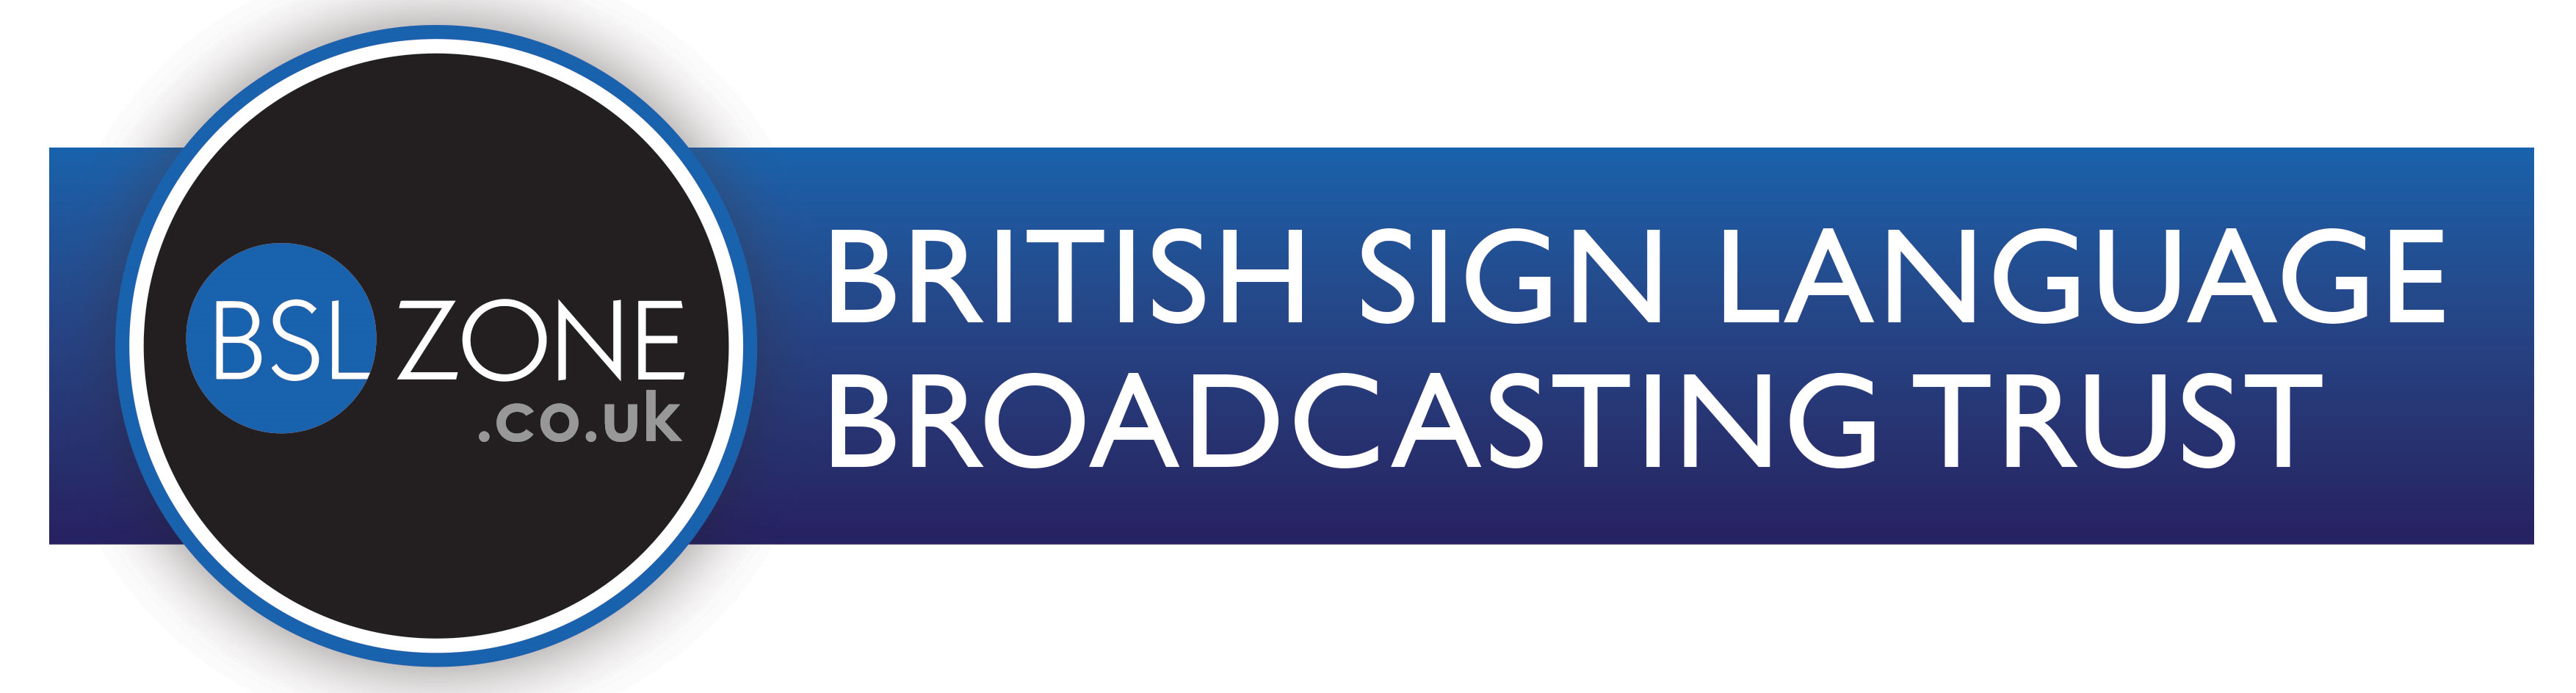 British Sign Language Broadcasting Trust